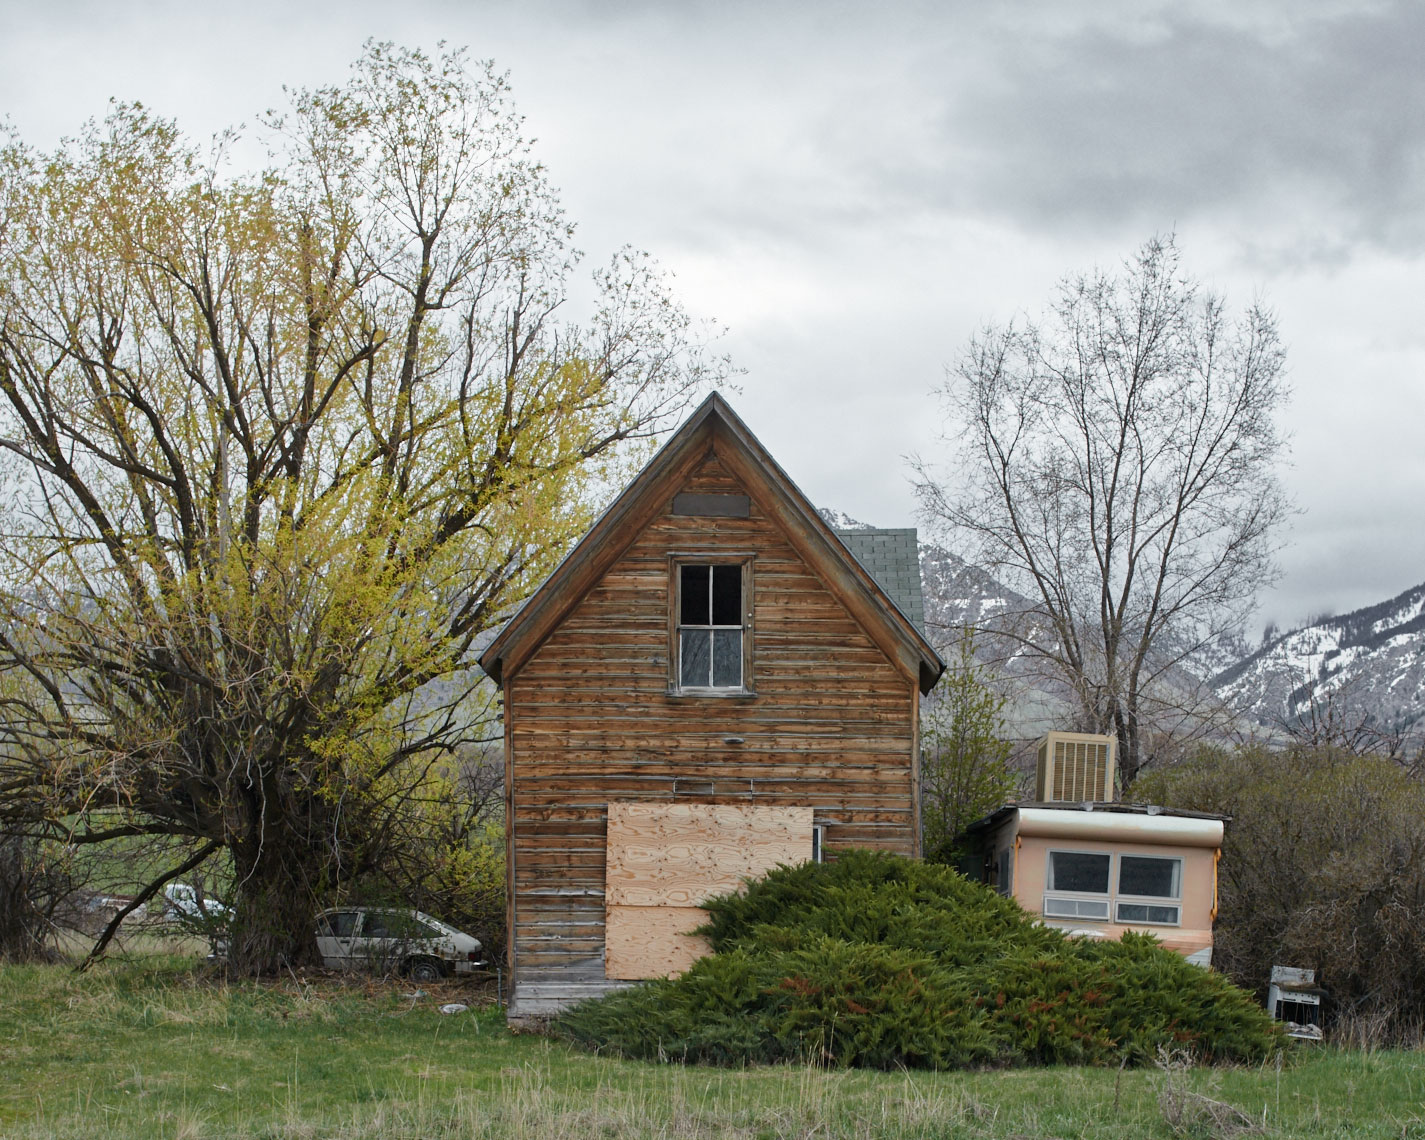 140413_Richmond_UT-07